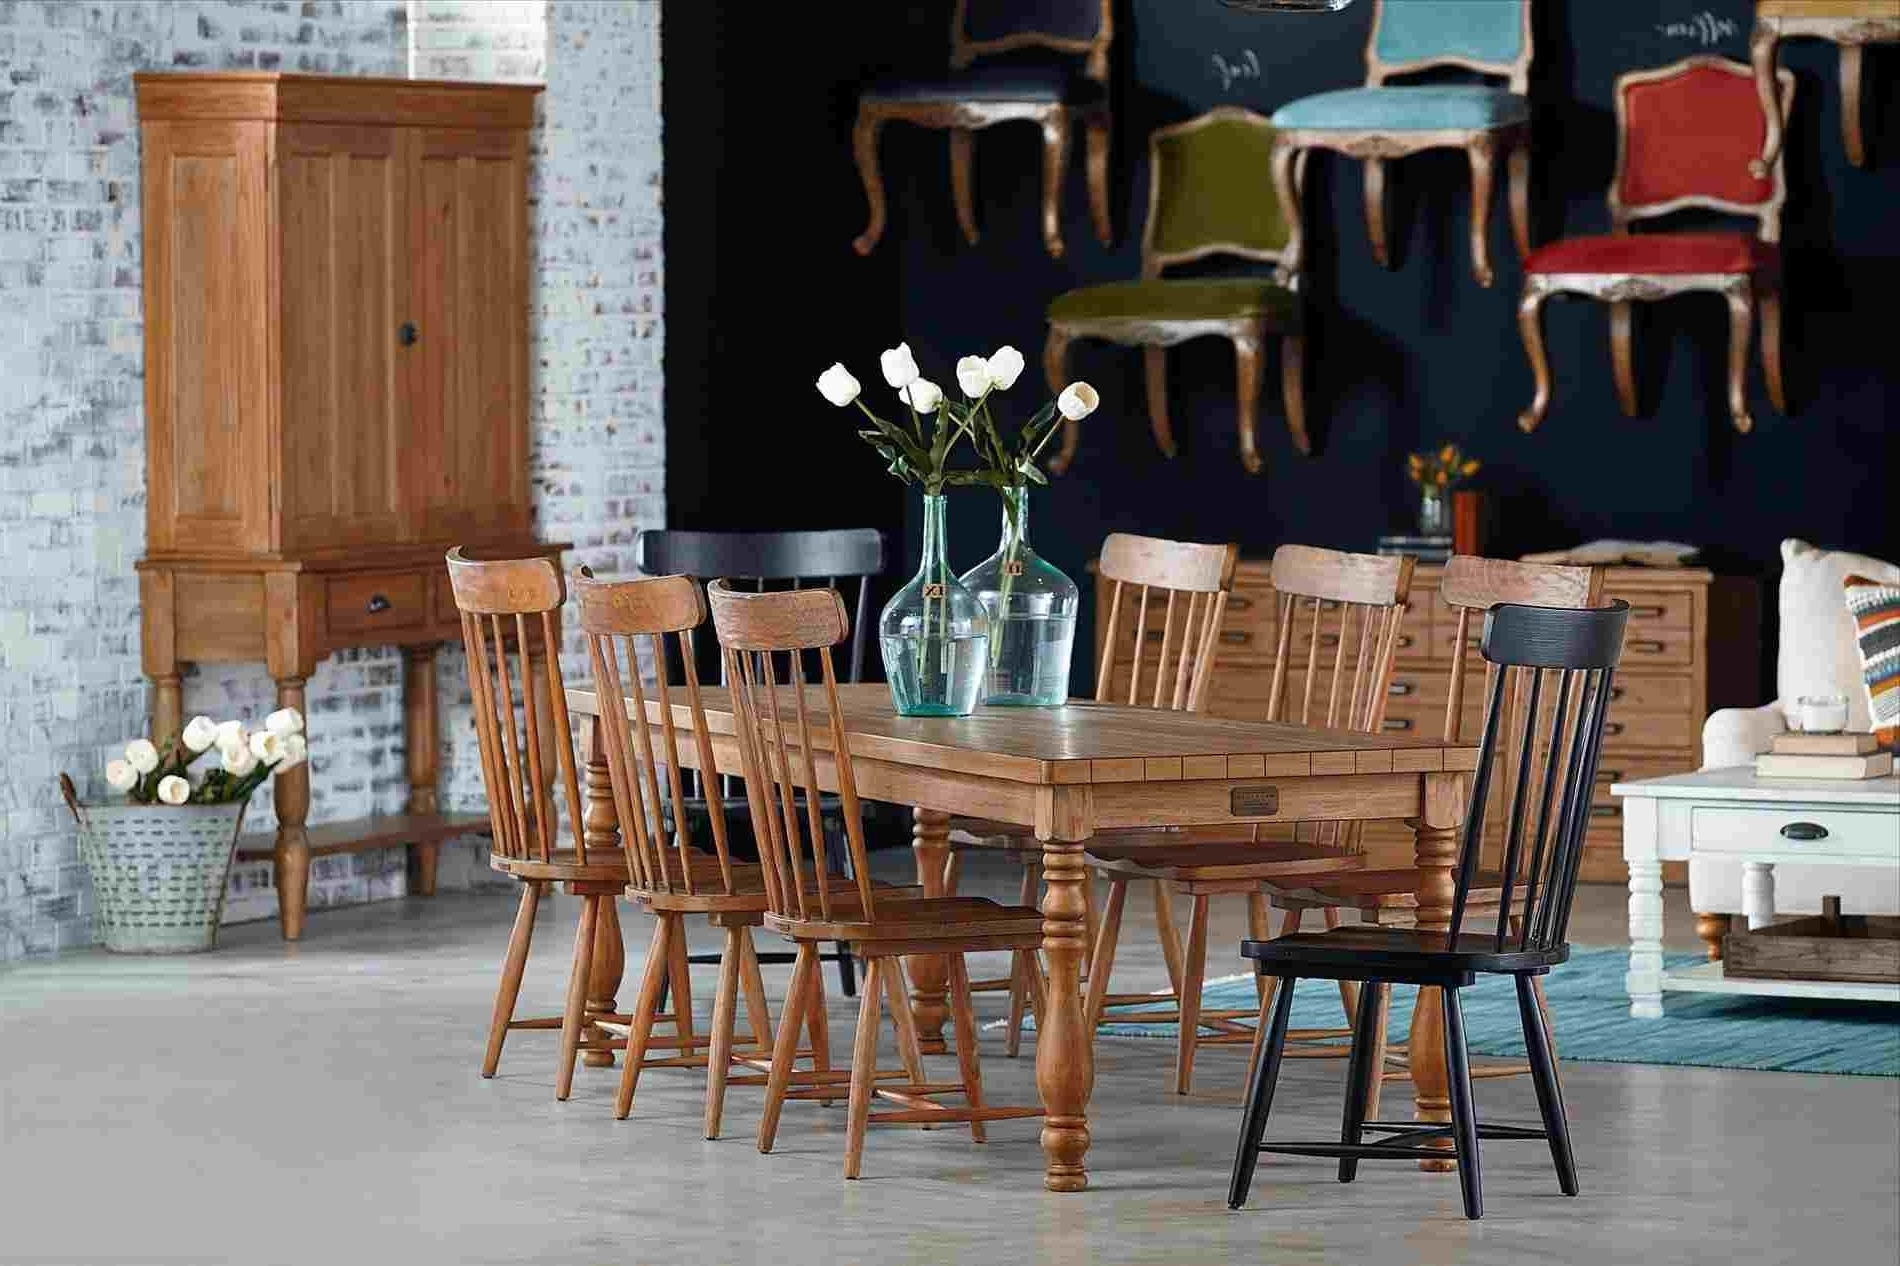 Magnolia Home Trestle Dining Table Elegant Joanna Gaines Farmhouse Intended For Trendy Magnolia Home Sawbuck Dining Tables (View 20 of 25)